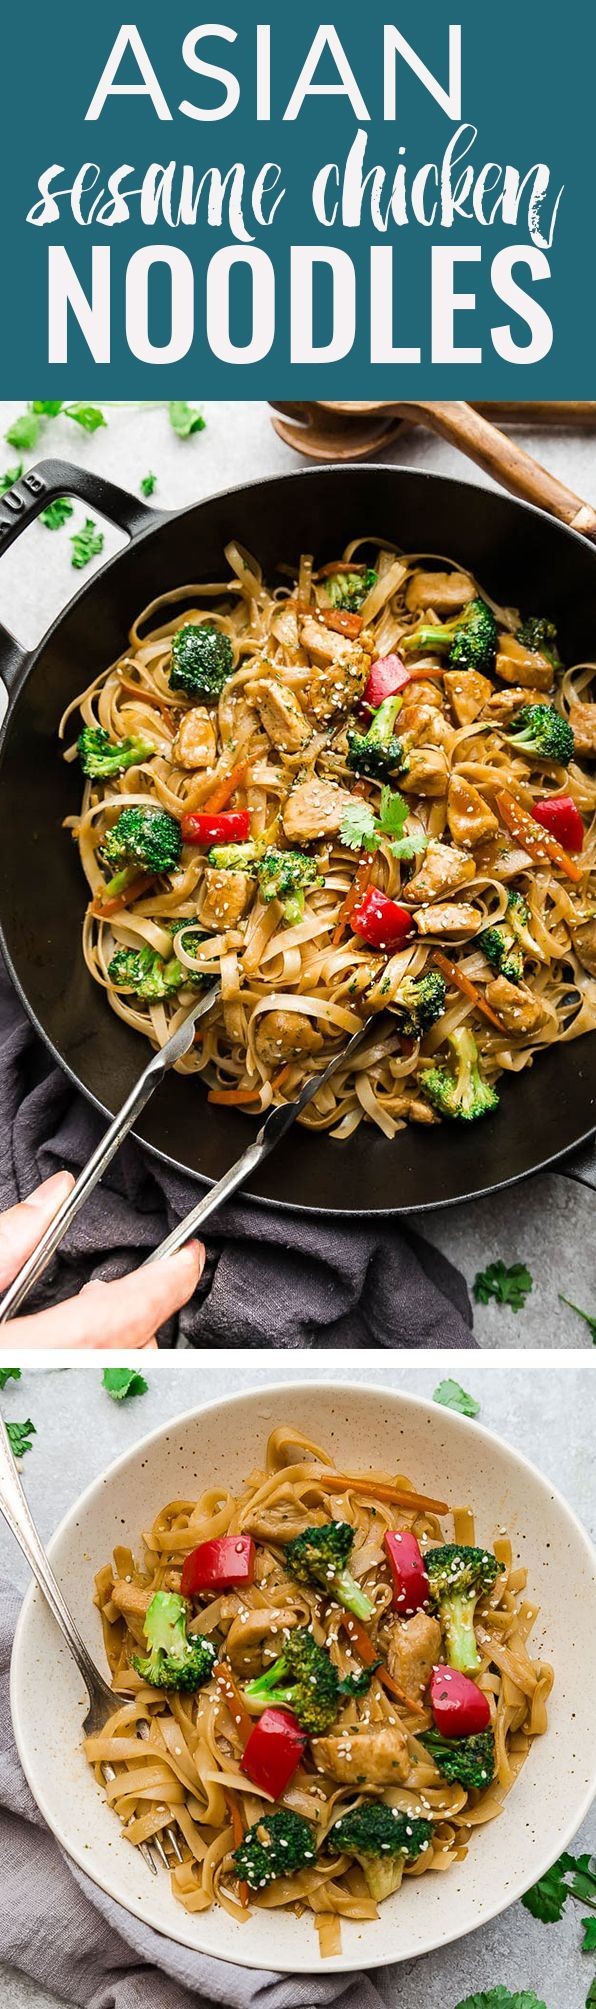 Asian Sesame Chicken Noodles – an easy one pot 30 minute meal perfect to curb those takeout cravings. Best of all, so simple to customize and made with chicken, veggies, gluten free rice noodles (or low carb shirataki noodles) and a delicious savory Asian-inspired sauce. Great for leftovers or Sunday meal prep for your lunch bowls and containers for work. #takeoutfakeout #chinesenoodles #noodles #chinesefood #recipe #sesame #chicken #glutenfree